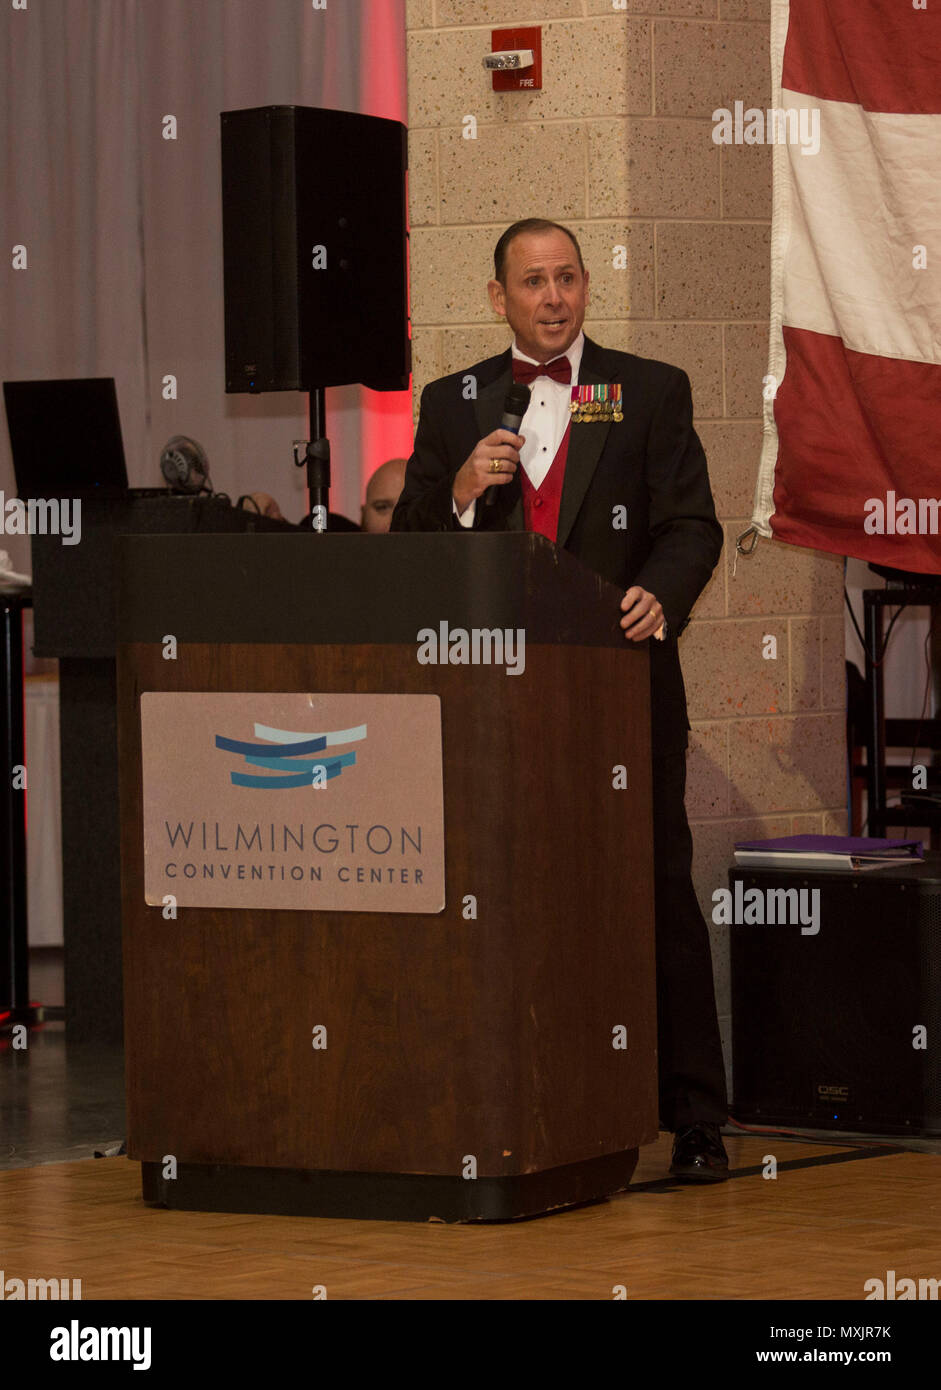 Retired U.S. Marine Corps Sgt. Maj. Scott L. Theakston, gives a speech during the Headquarters Battalion, 2d Marine Division 241st Marine Corps Birthday Ball, Wilmington Convention Center, Wilmington, N.C., Nov. 12, 2016. The Marine Corps has carried 241 years of traditions, values and standards since its establishment in 1775. (U.S. Marine Corps photo by Lance Cpl. Ursula V. Estrella) Stock Photo